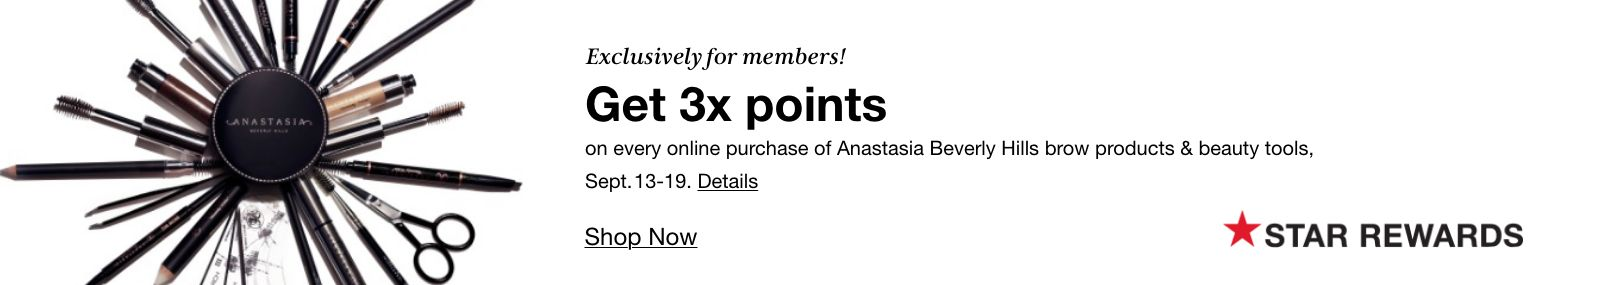 Exclusively for members, Get 3x points, on every online purchase of Anastasia Beverly Hills brow products & beauty tools, Sept 13-19, details